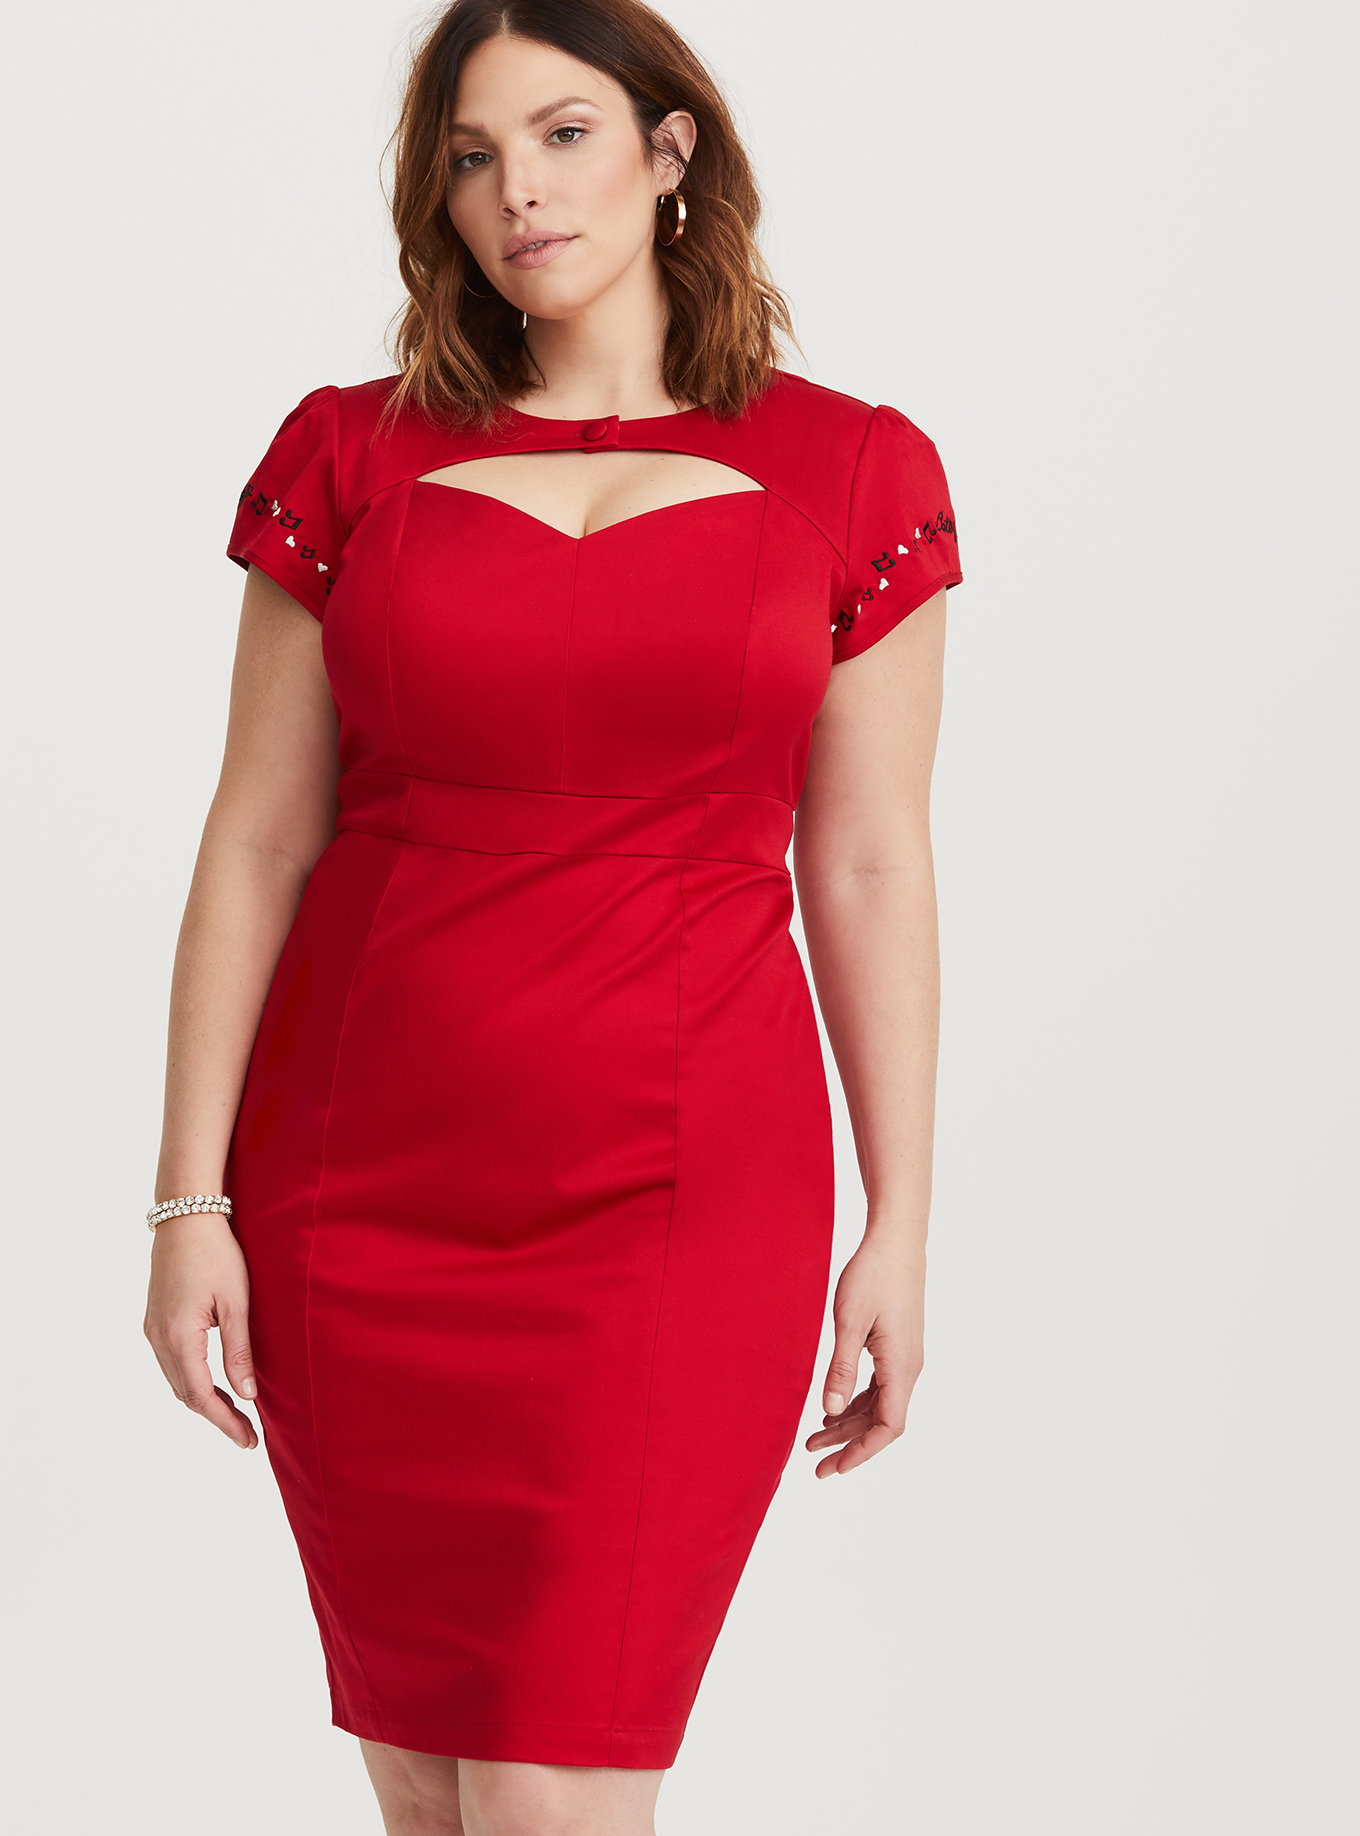 Curvy Girls Are Going to Love This Cute Betty BoopCollection